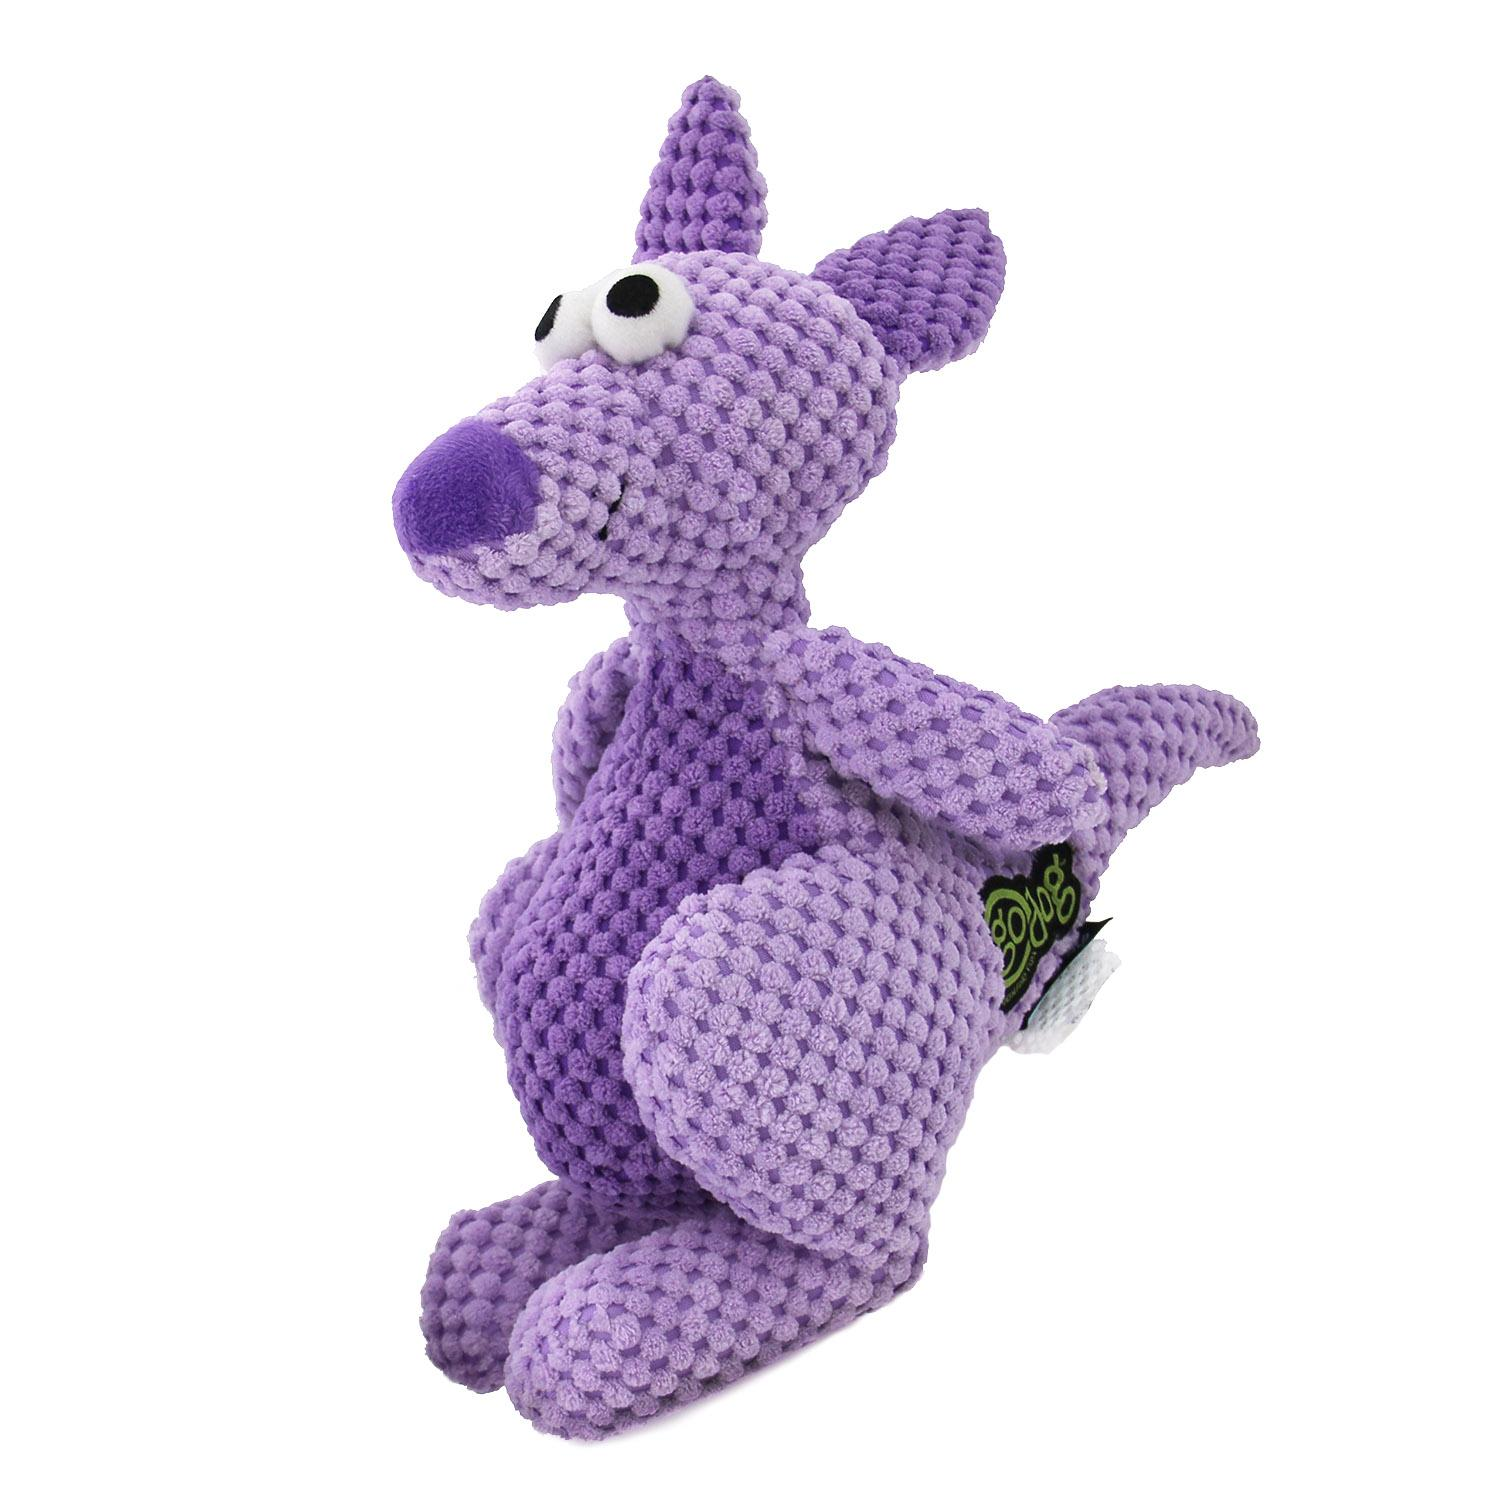 GoDog Checkers Kangaroo Dog Toy